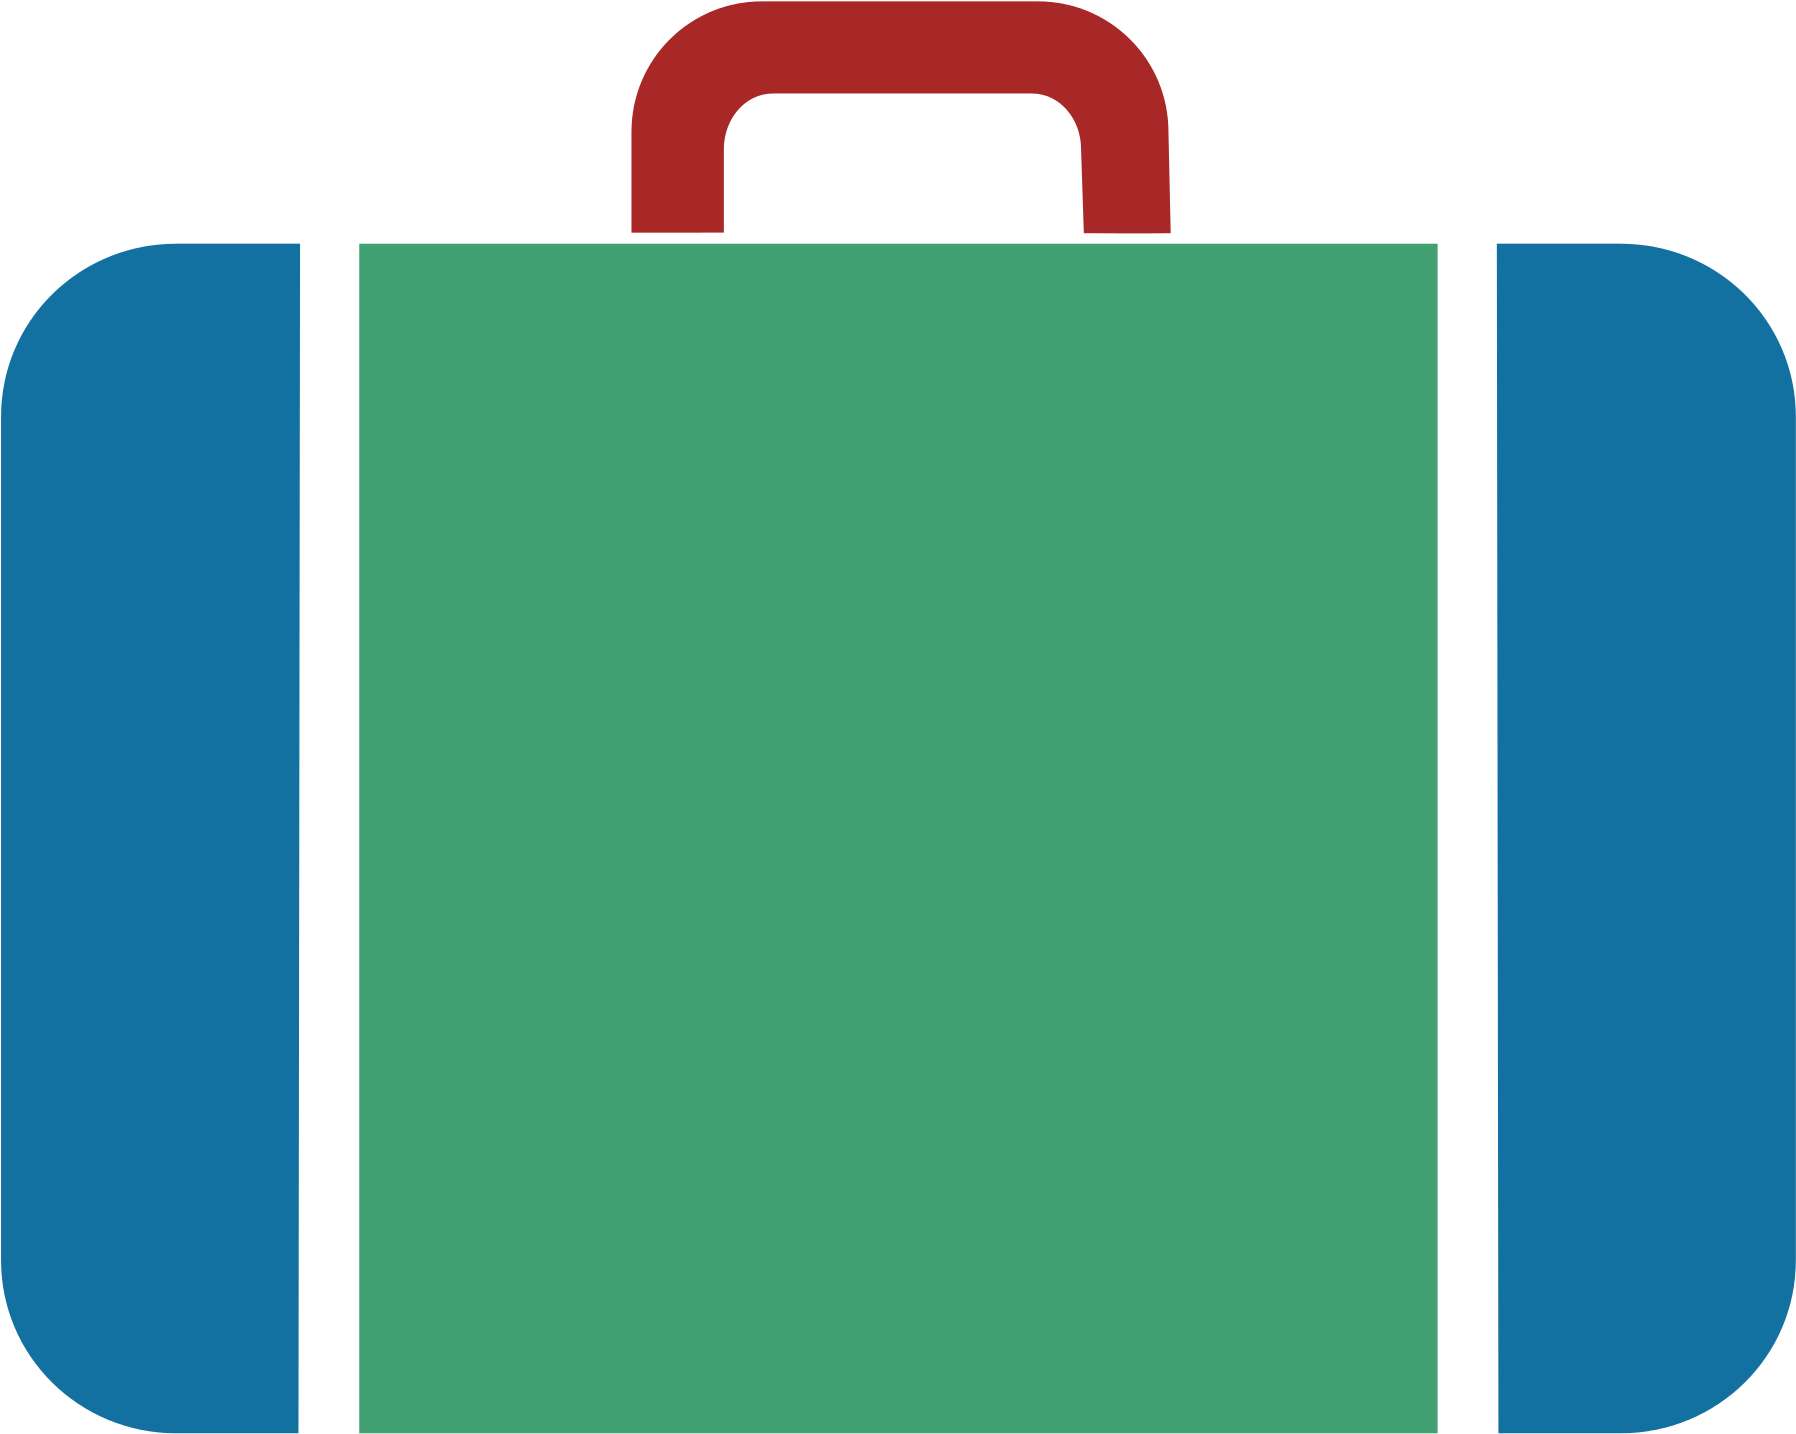 Suitcase icon download on. Luggage clipart svg